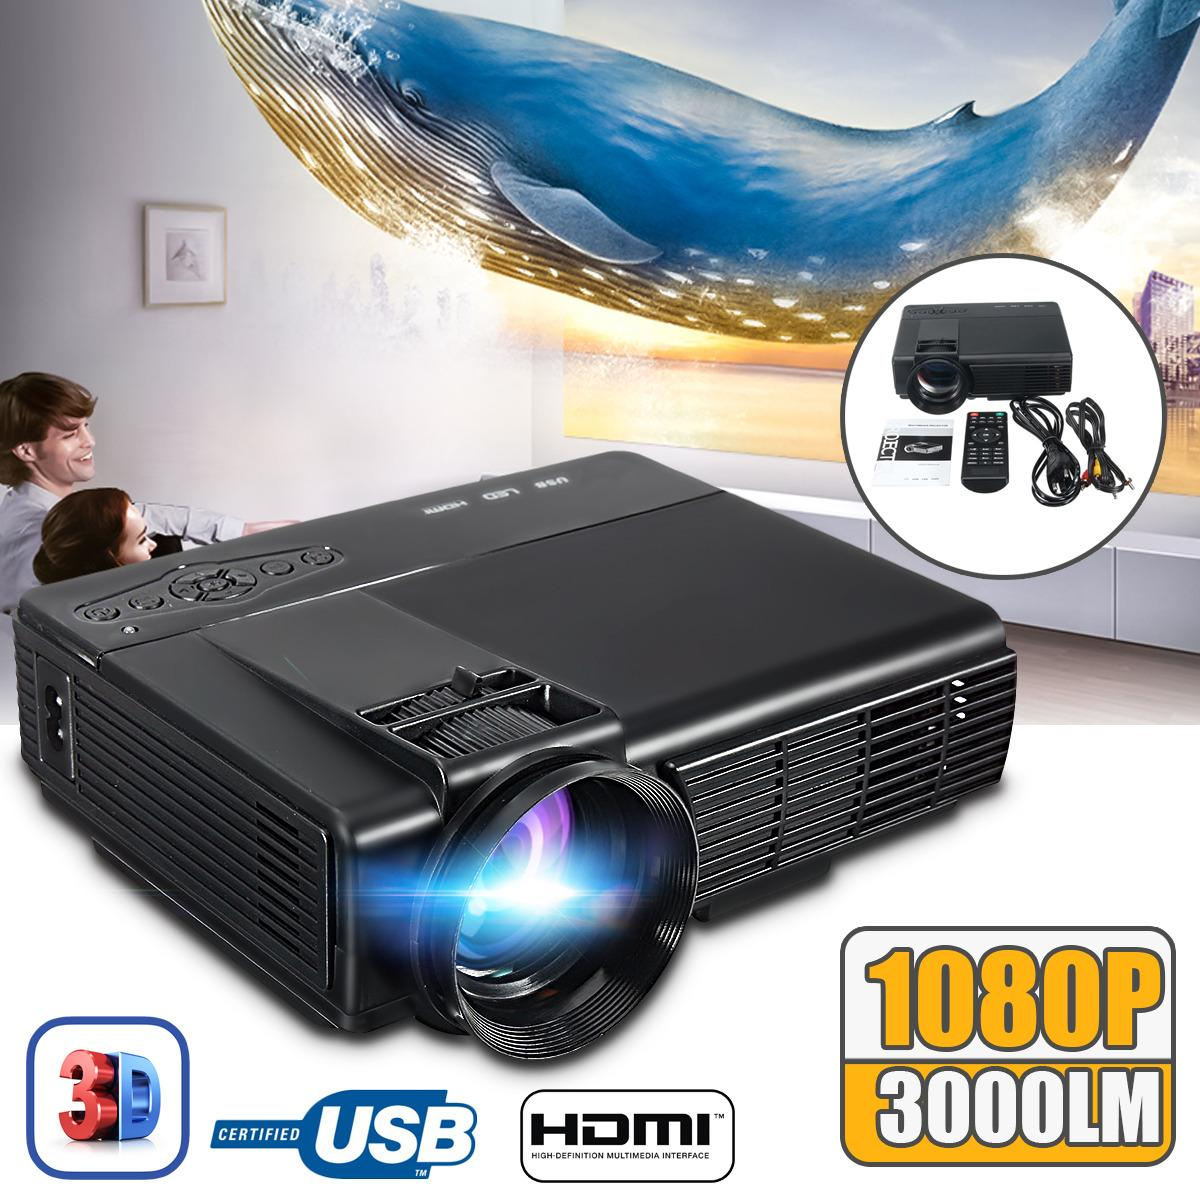 3000 Lumen 1080P HD LED 3D LCD Home Theater Projector Multimedia SD USB VGA HDMI EU Plug - intl